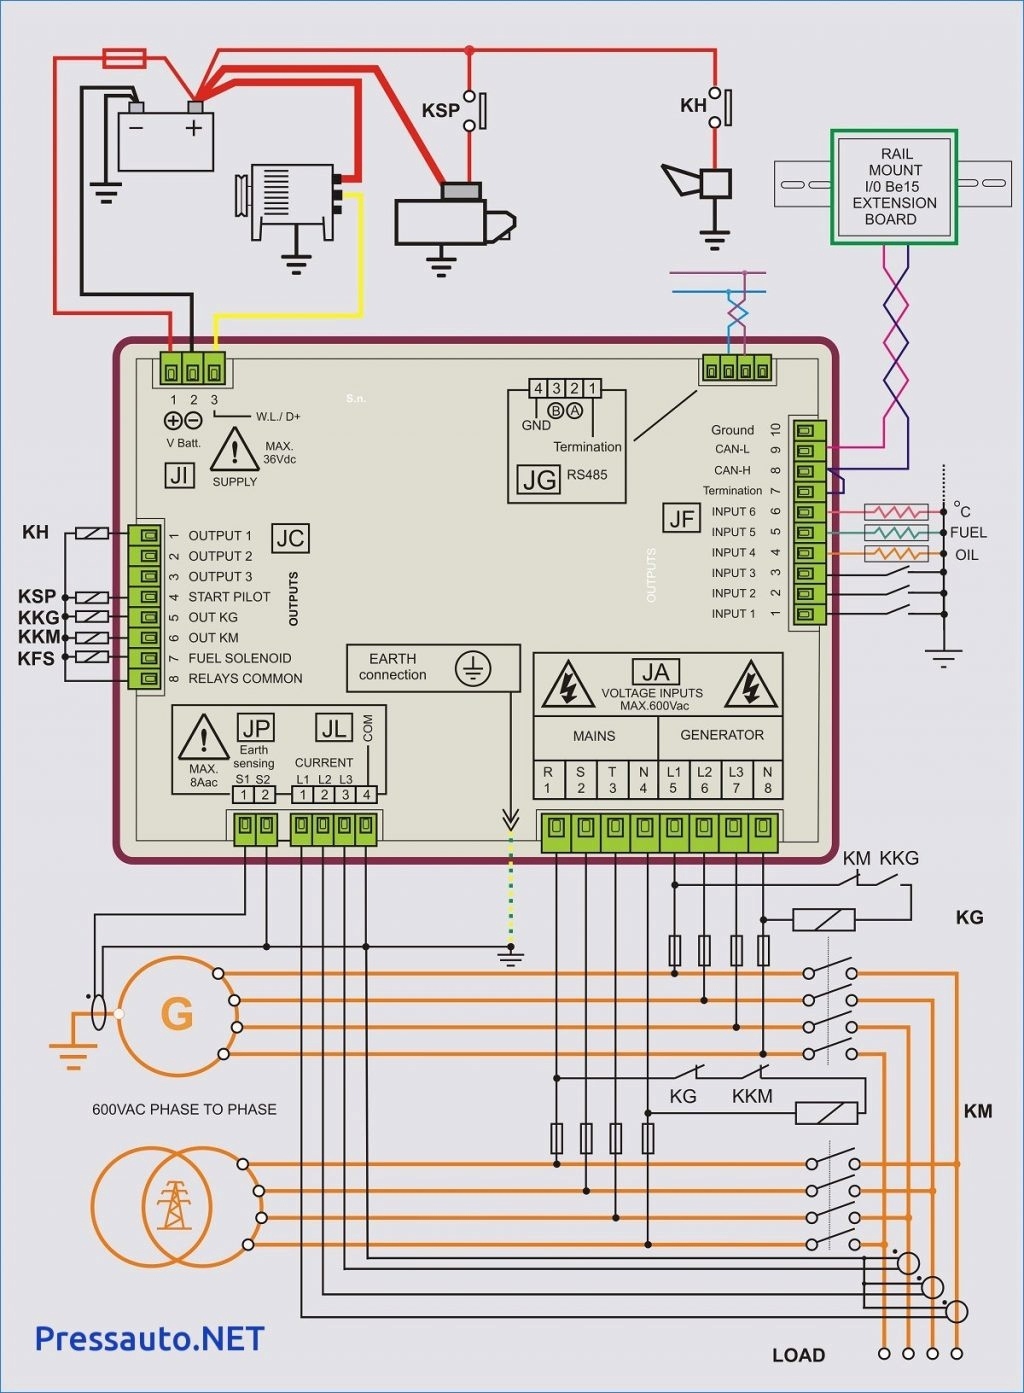 kohler transfer switch wiring diagram Collection-Full Size of Wiring Diagram Kohler Engine Wiring Diagram New Kohler Automatic Transfer Switch Wiring 5-s